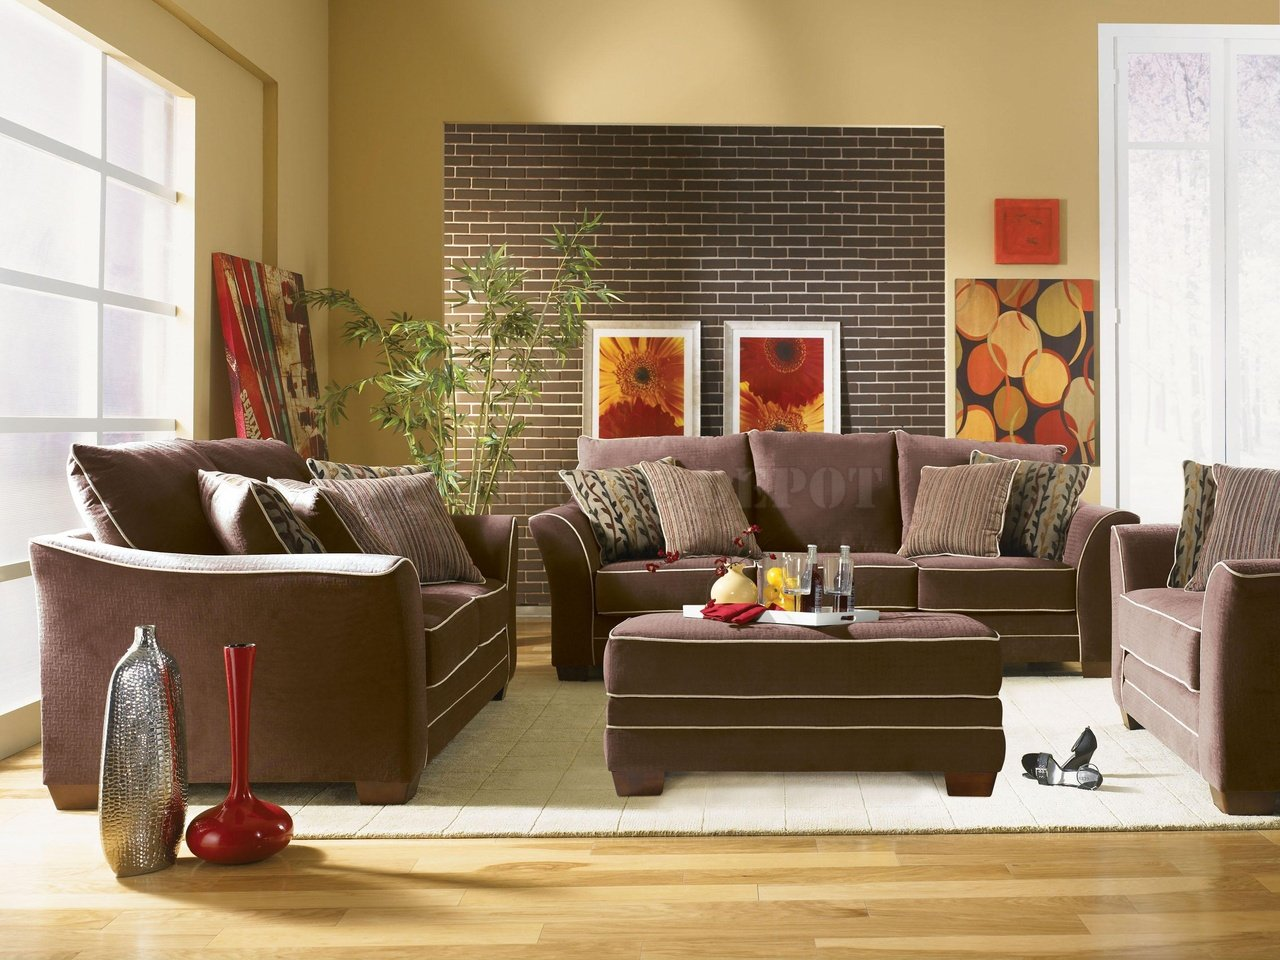 Interior design ideas interior designs home design ideas for Lounge living room ideas